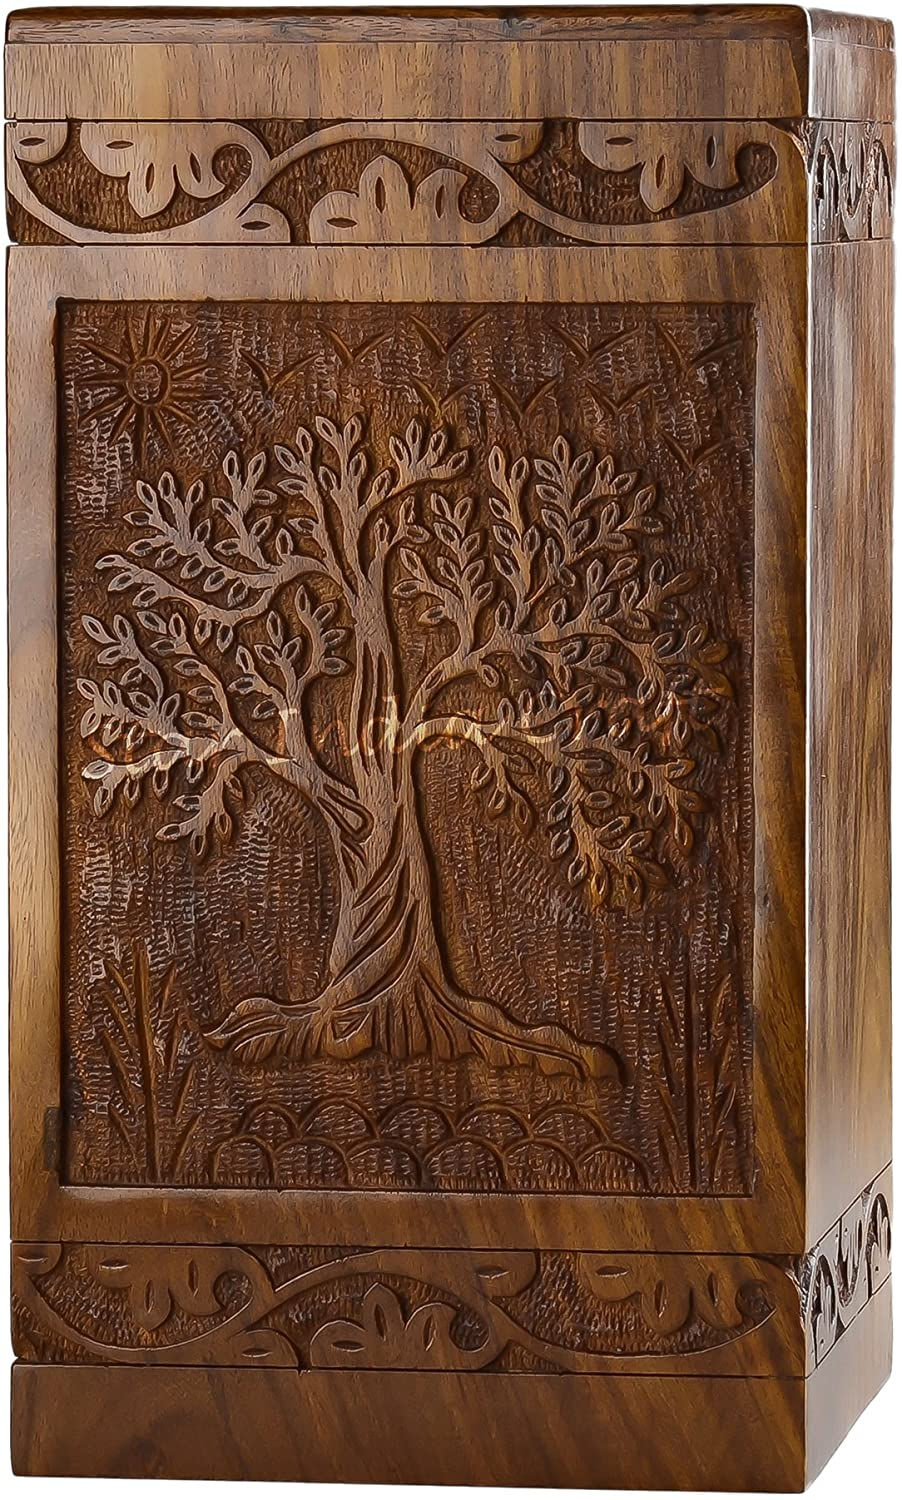 STAR INDIA CRAFT Rosewood Urn for Human Ashes Adult,Tree of Life Wooden Urns for Ashes, Cremation Pet Urns for Dogs Ashes, Wooden Box, Funeral Urn Box (Tower Tree of Life, 150 Cu/in)